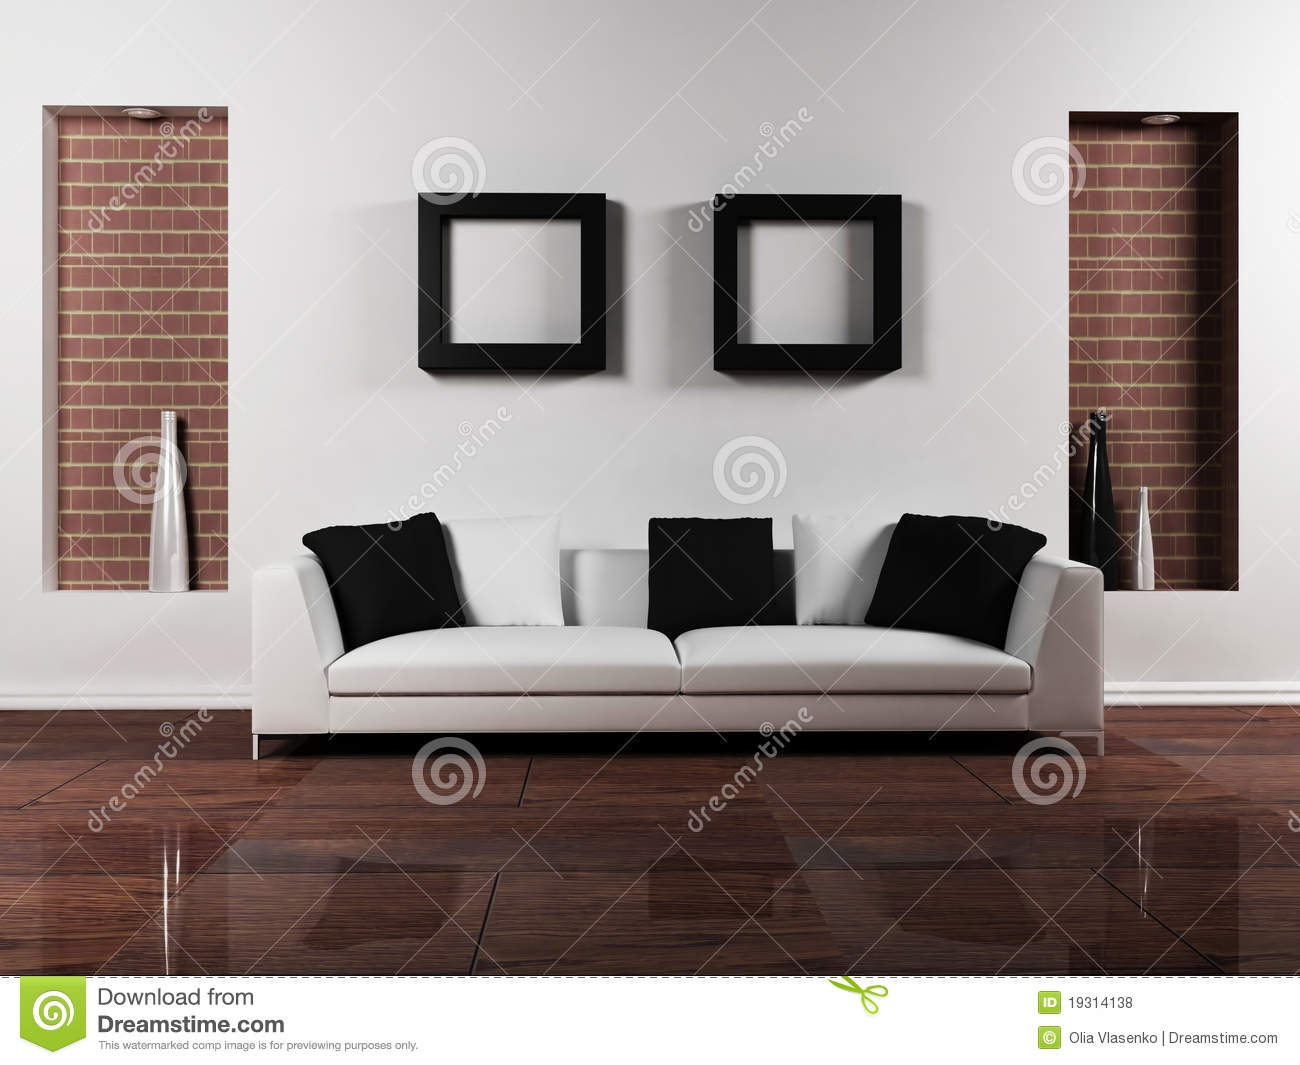 Modern interior design of living room stock illustration image 19314138 for Image interior design living room